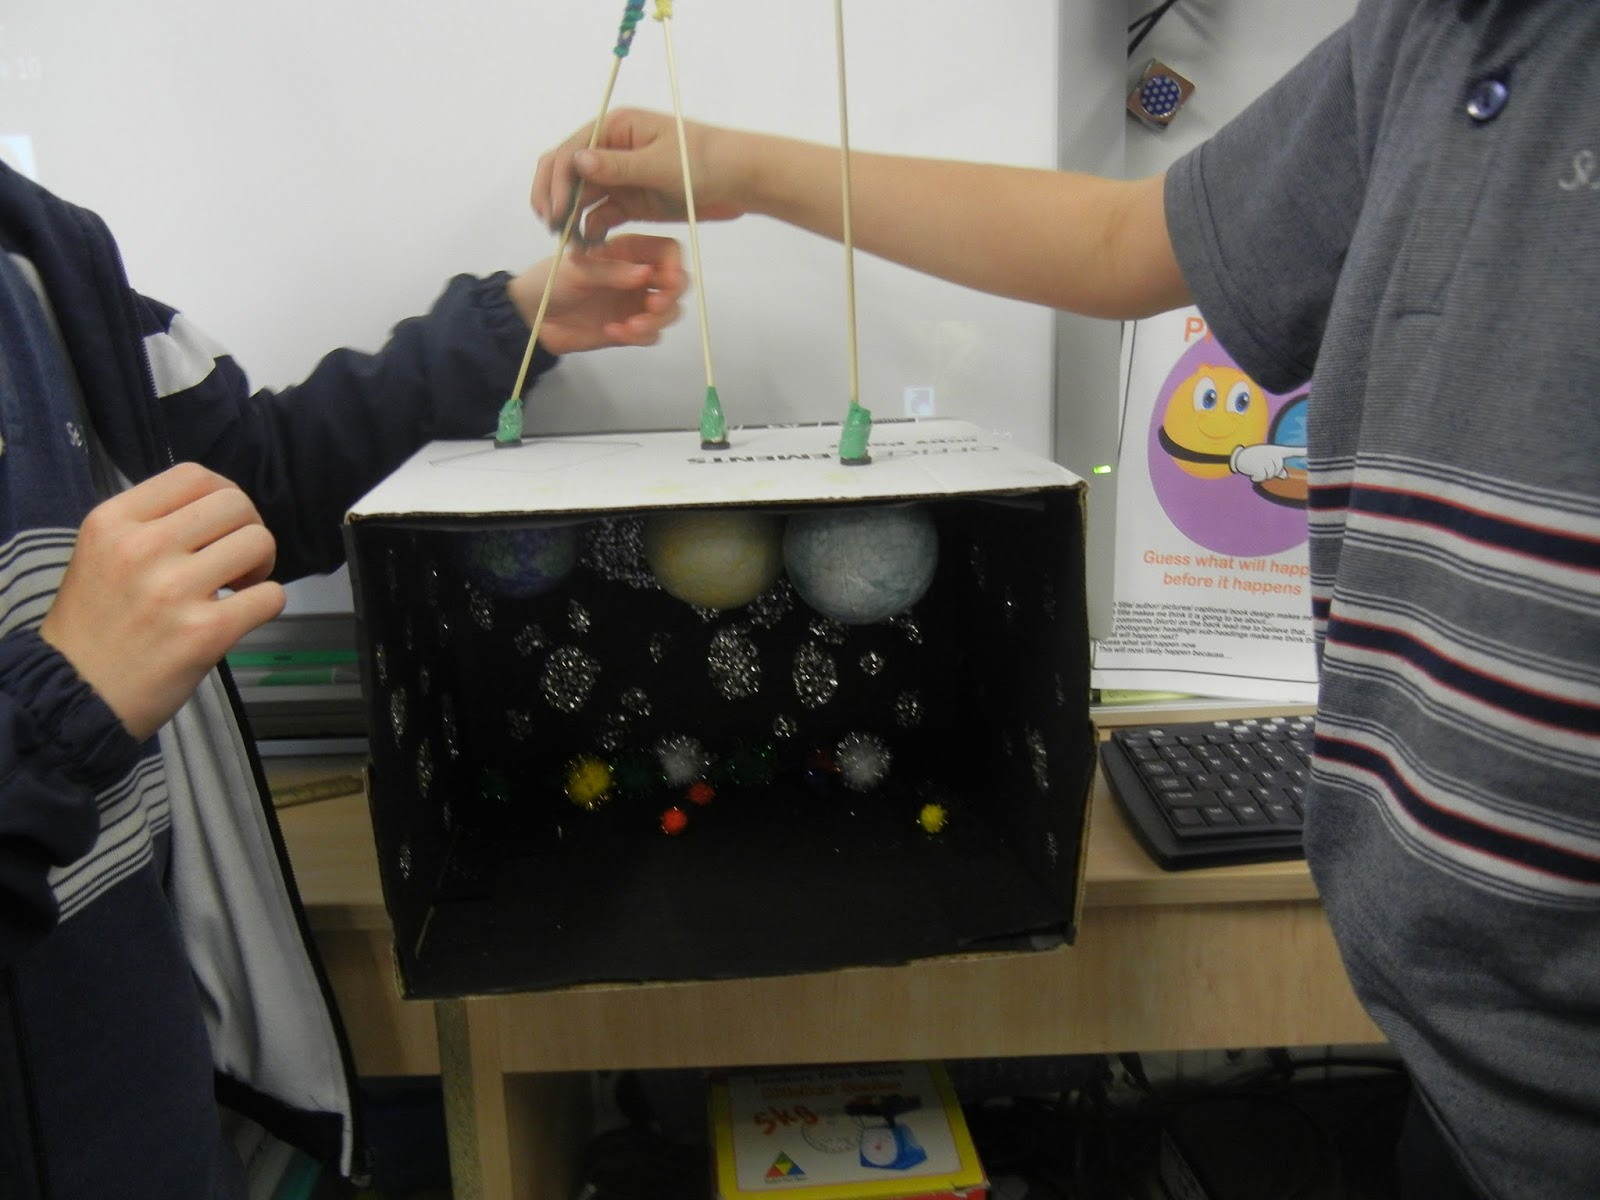 Solar System Model Inside Box (page 4) - Pics about space